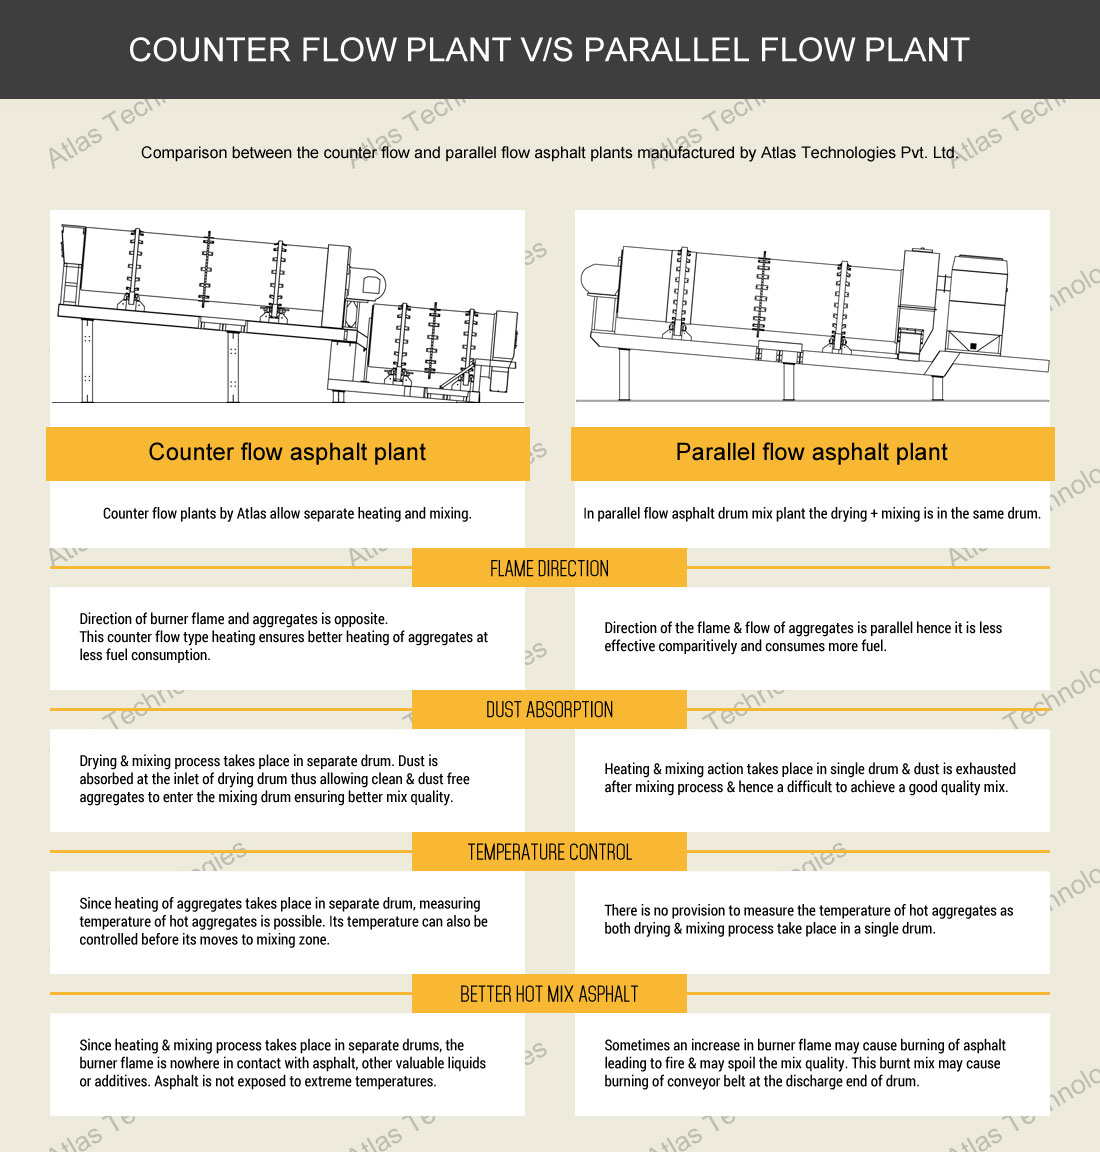 counterflow v/s parallelflow plant